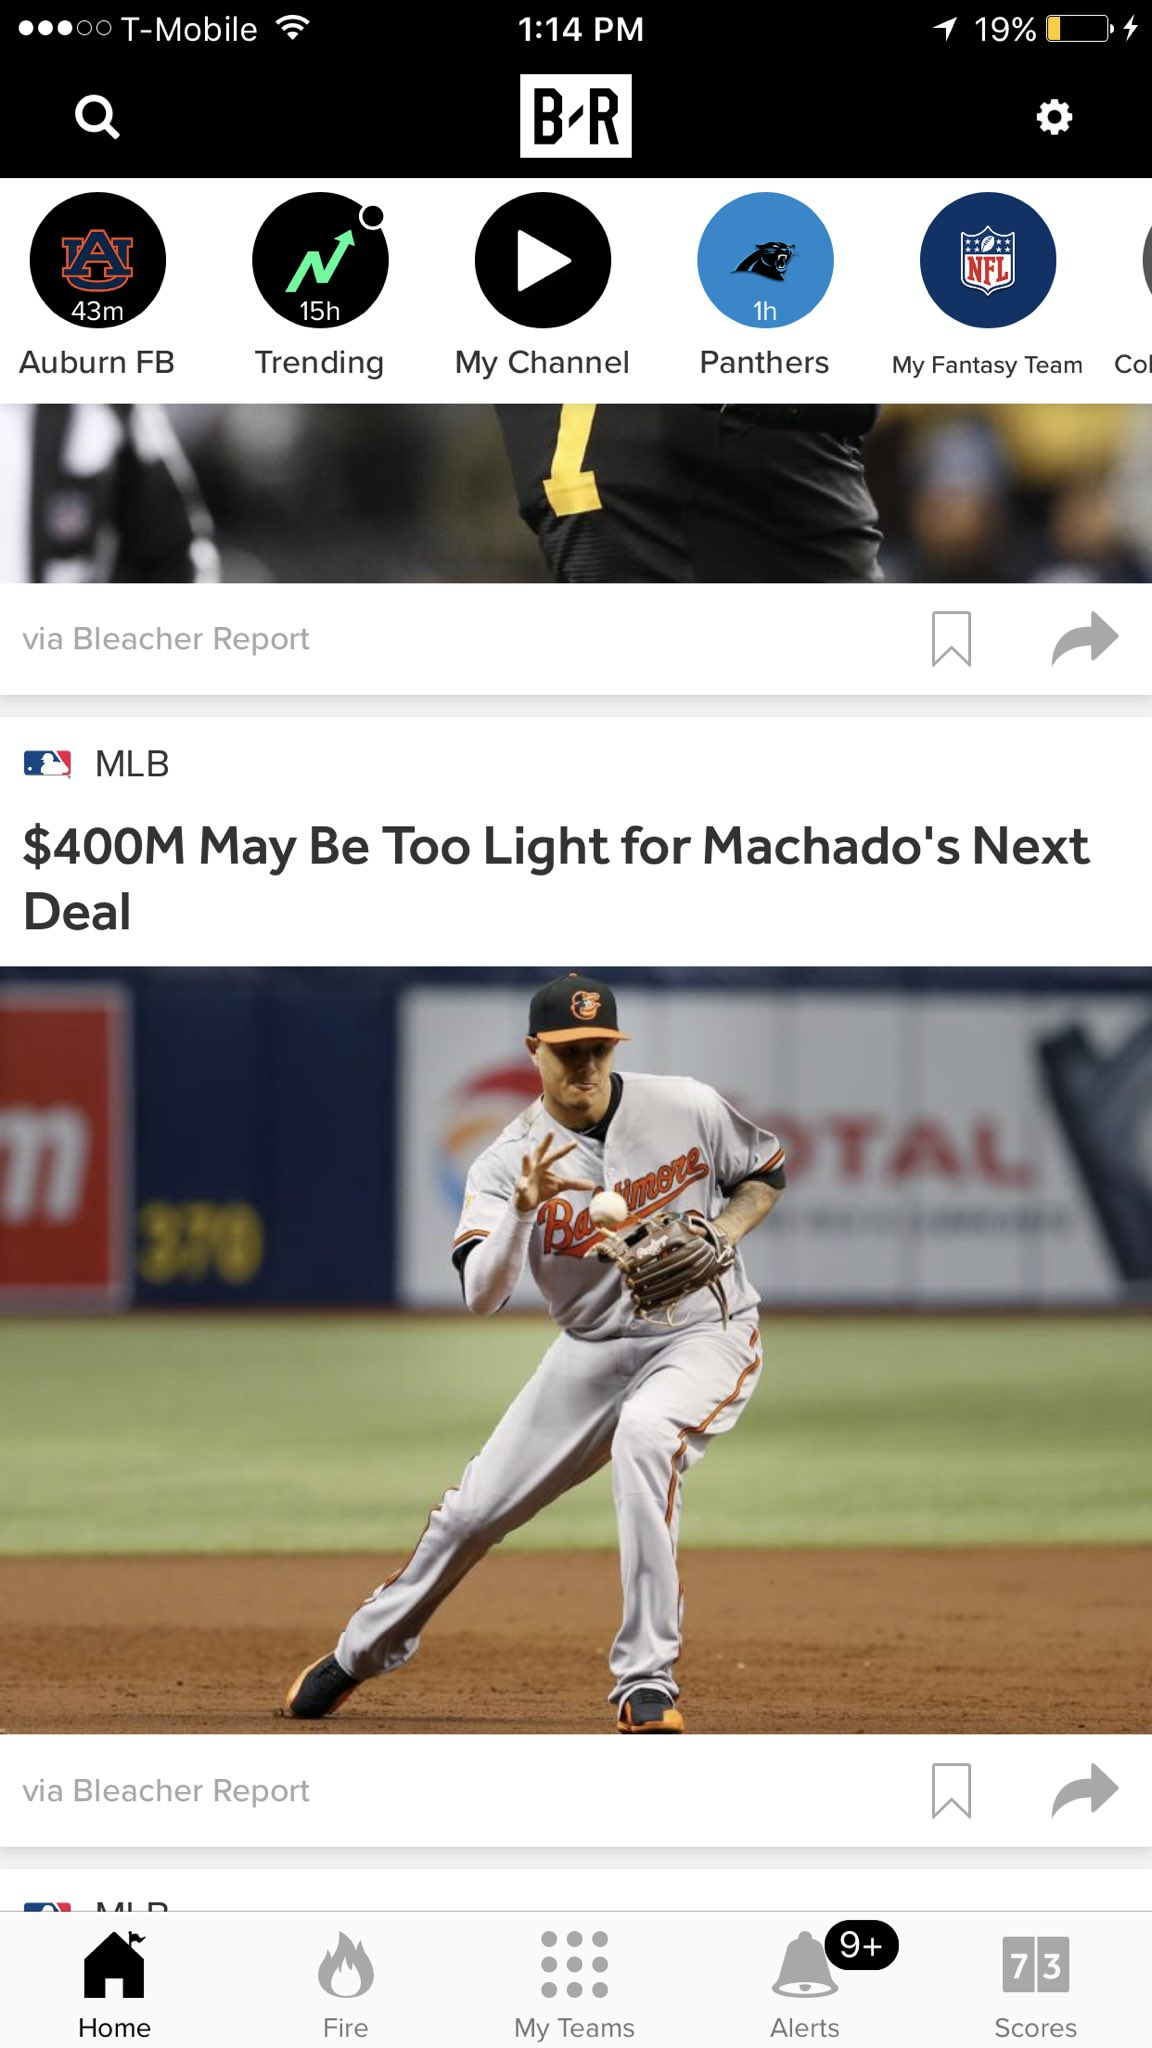 I love it..... him, Bryce, trout bout to reset the market https://t.co/sjuUyxCMQ1